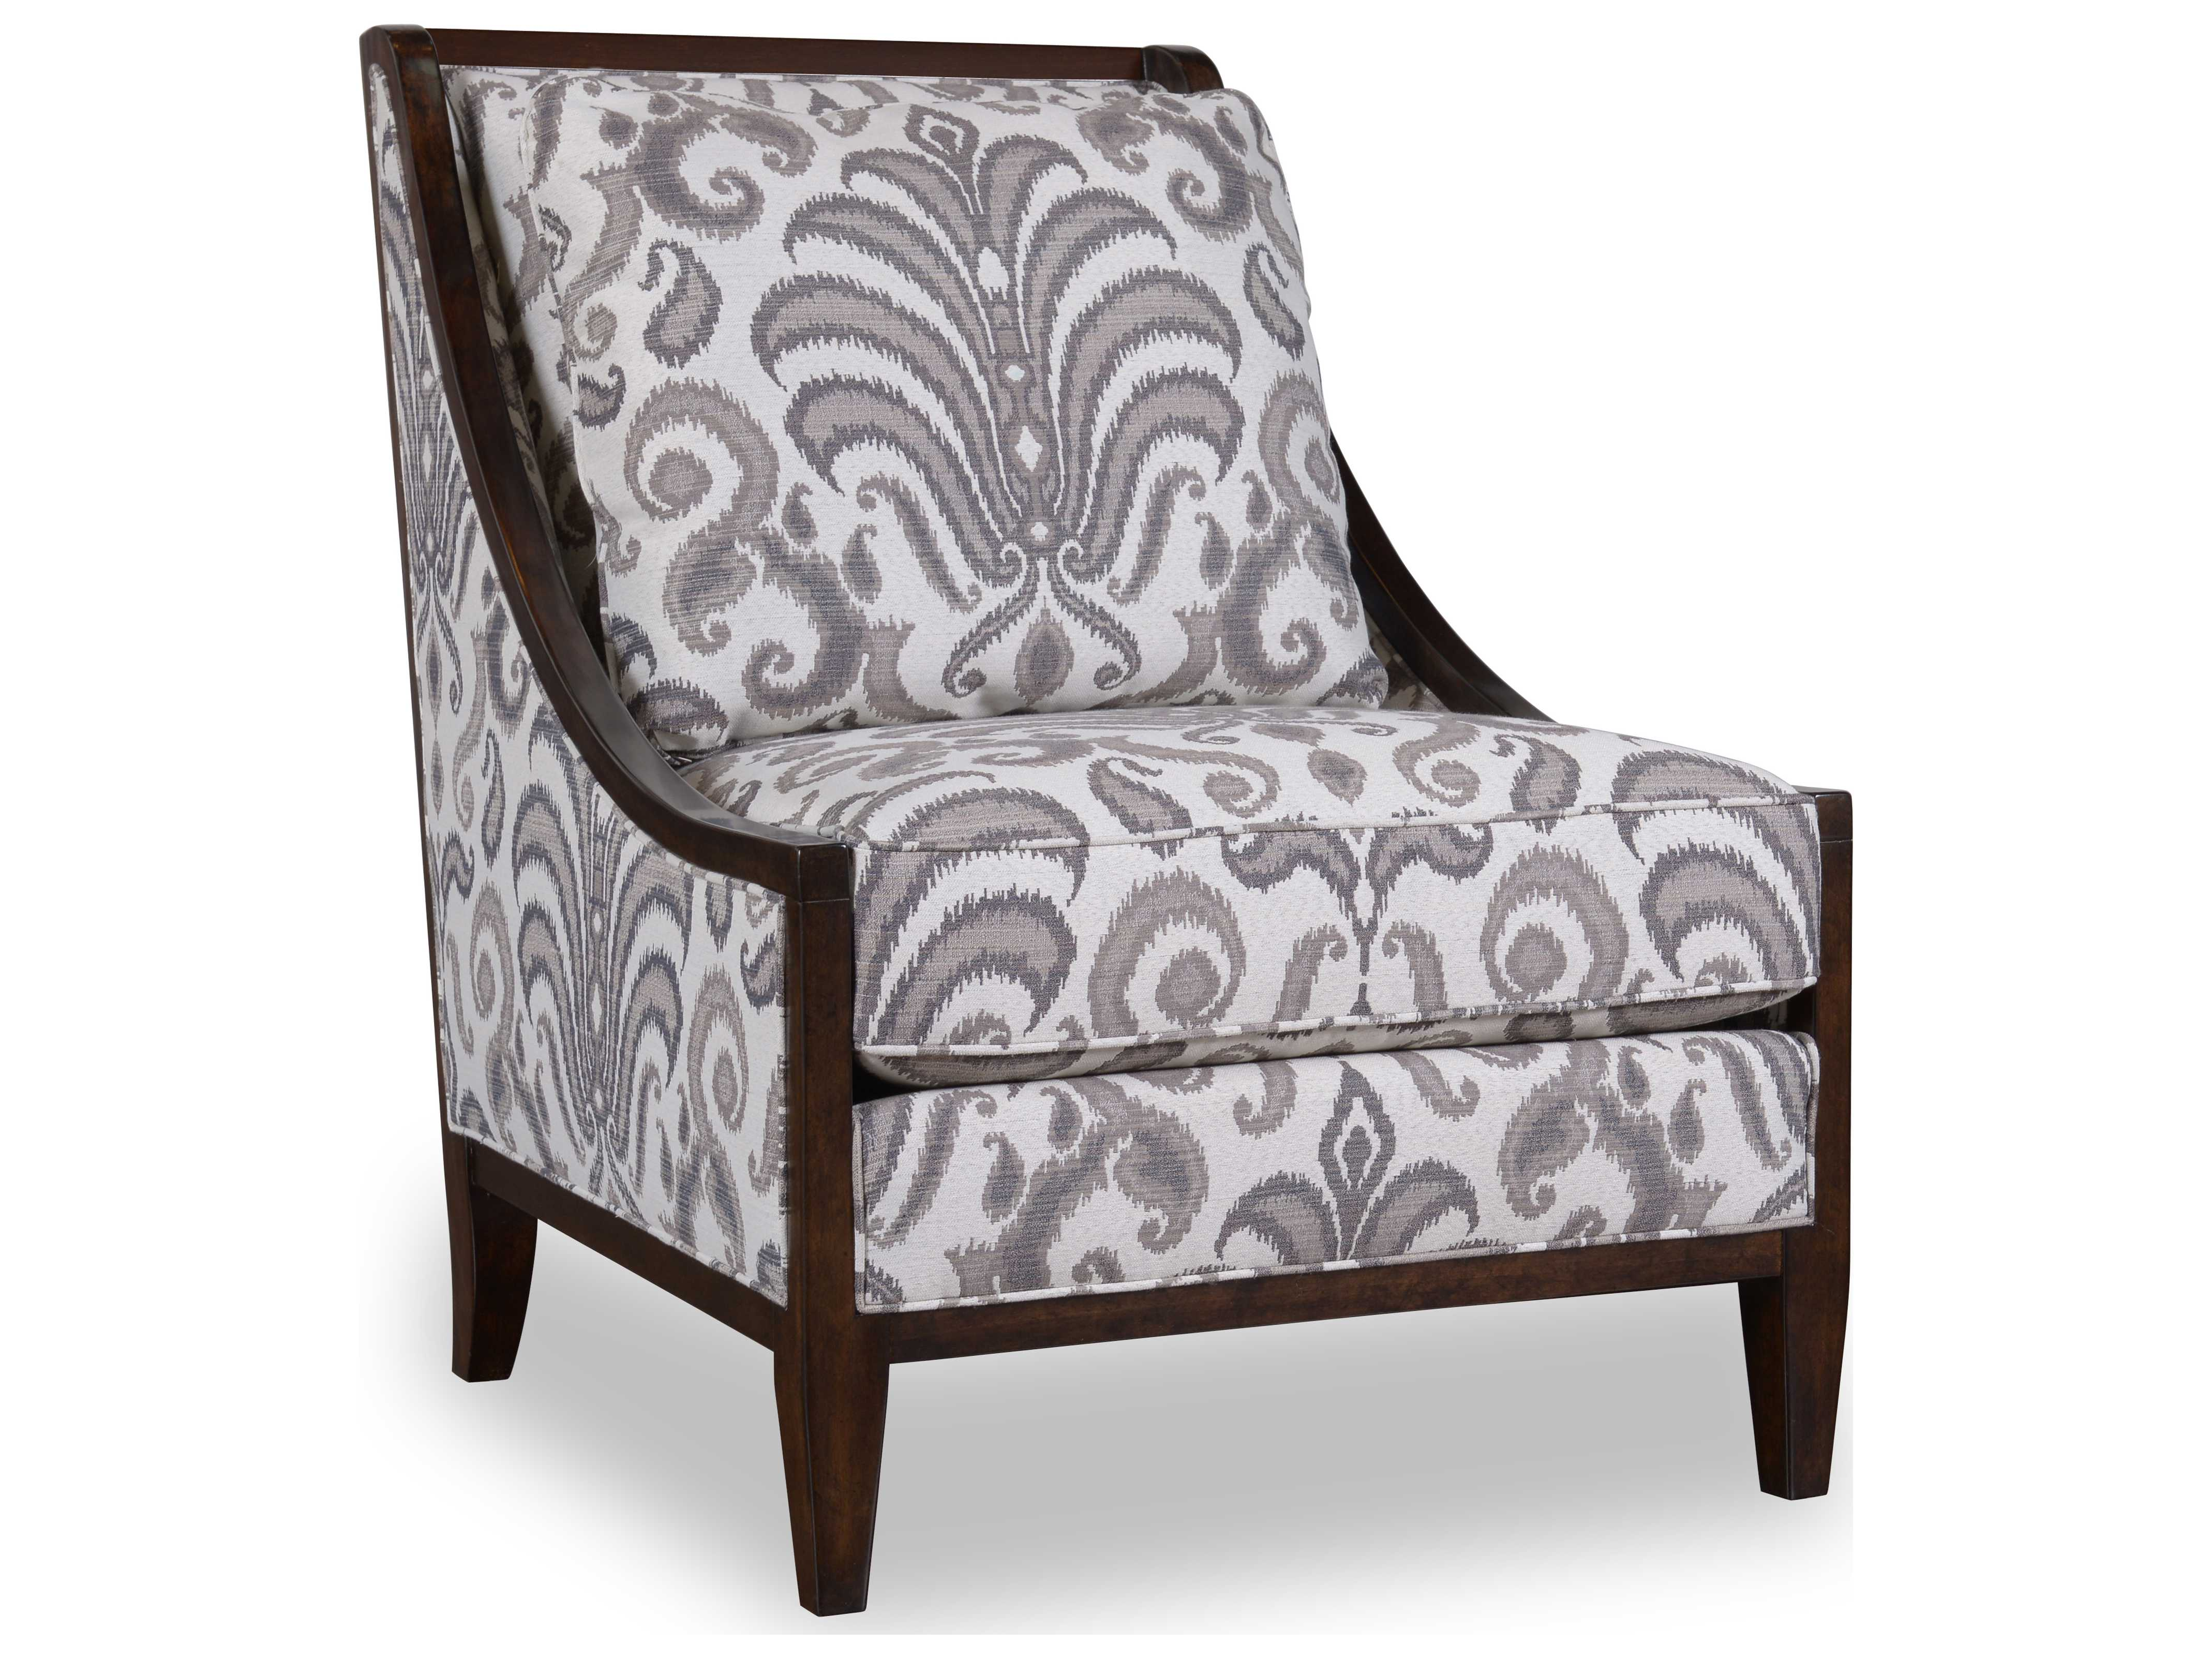 Art Furniture Morgan Charcoal Brindle Accent Chair